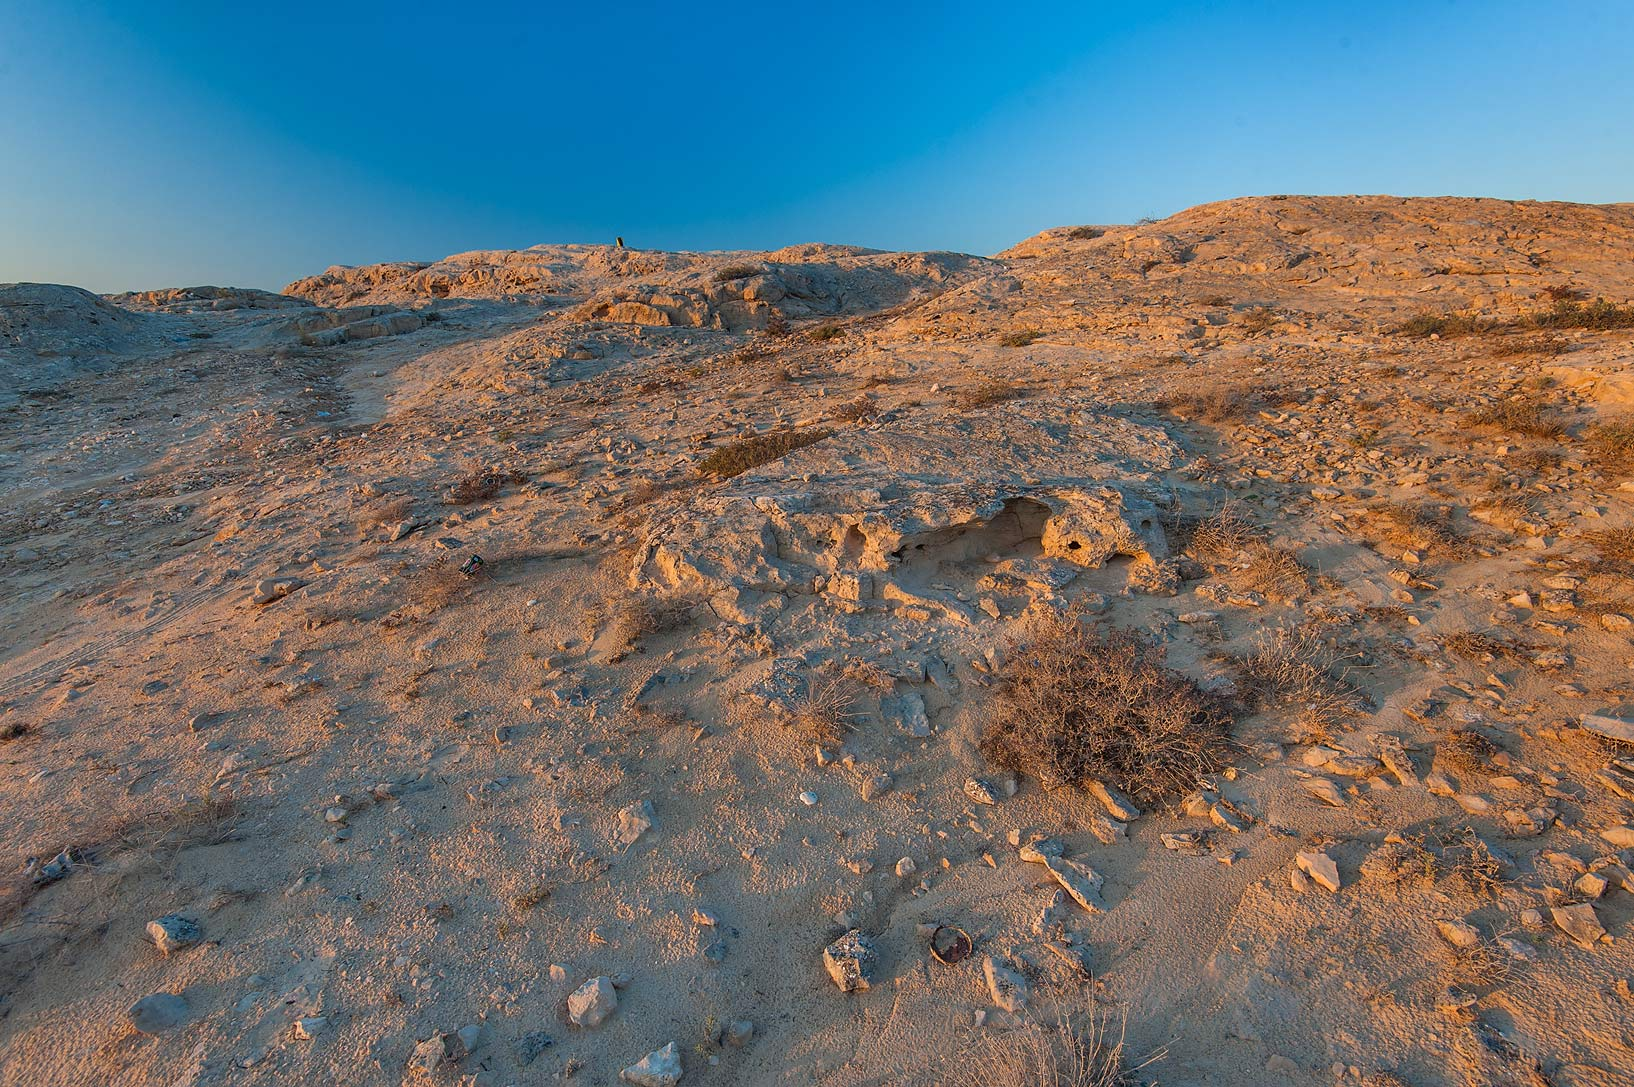 Limestone hill of Jebel Fuwairit. North-eastern Qatar